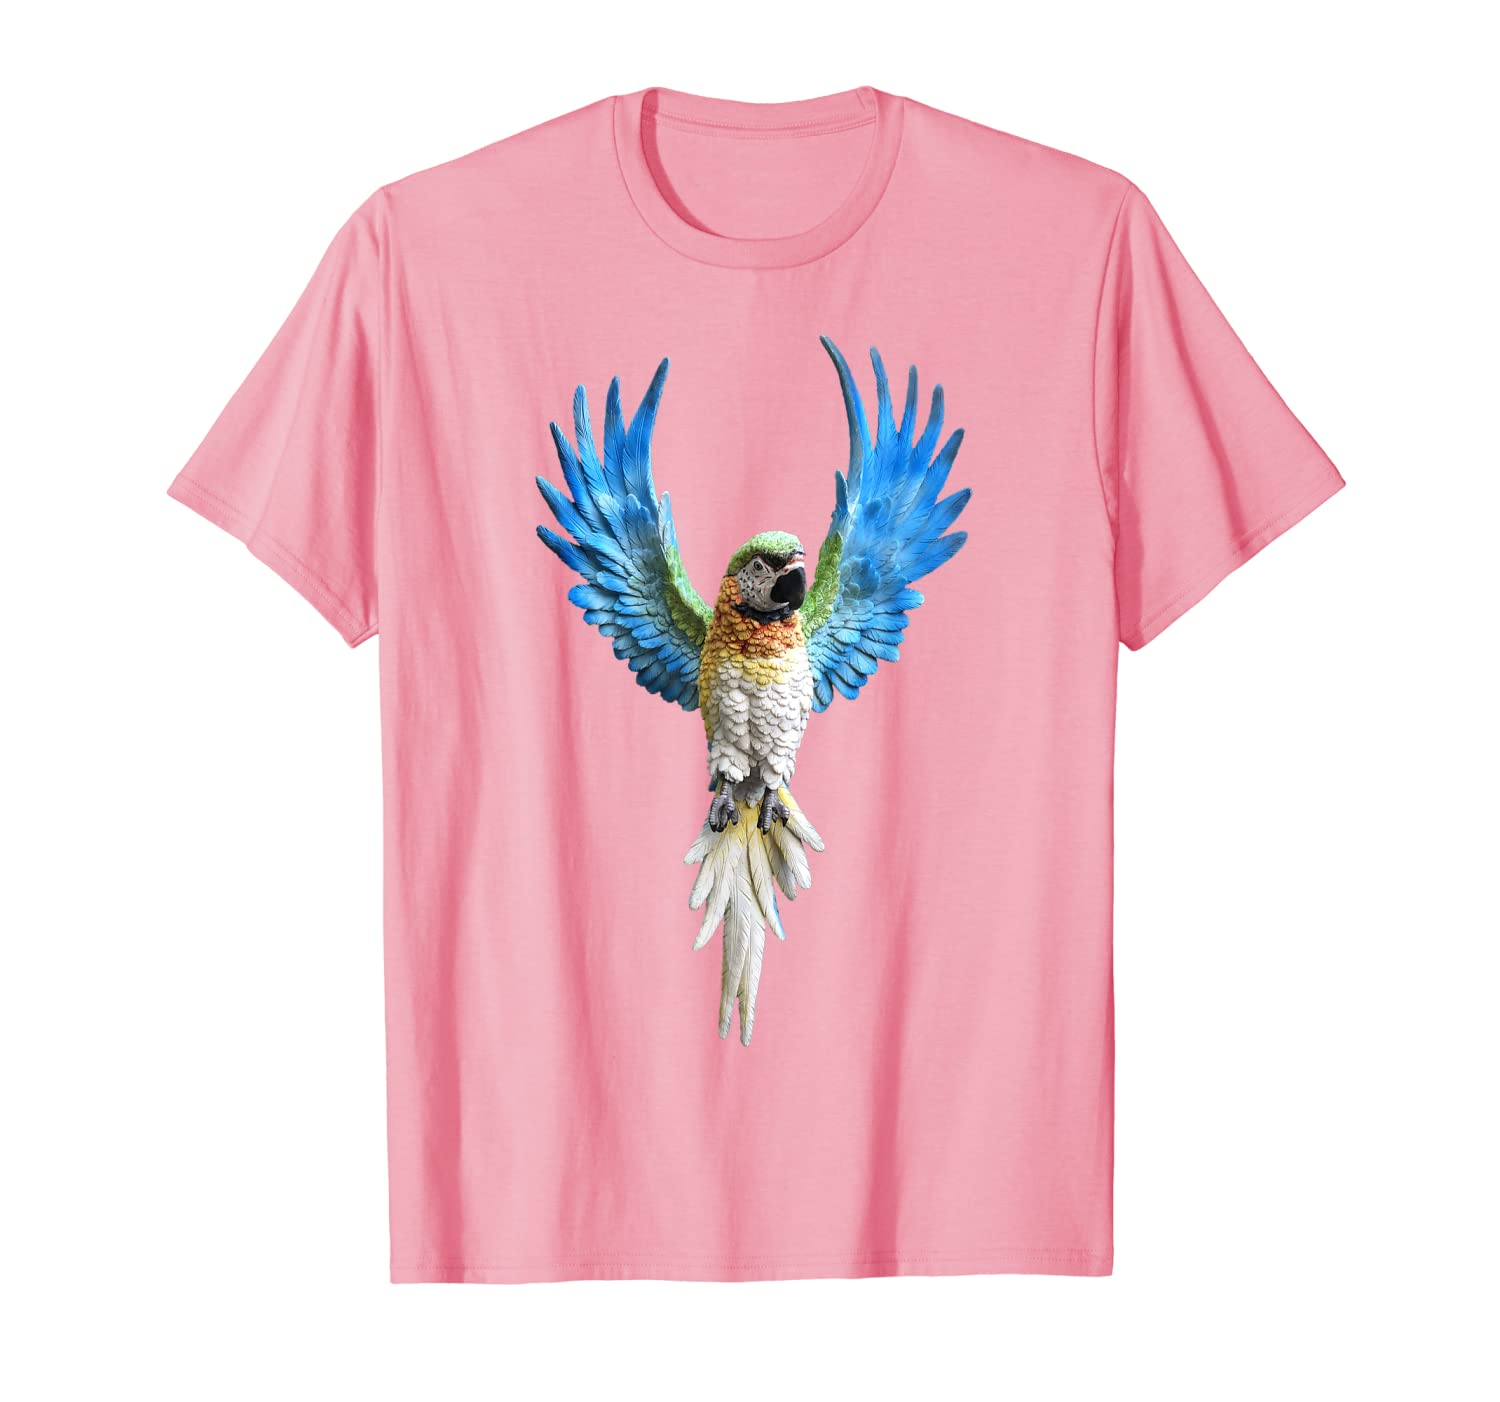 Macaw Shirt For Men Women Kids Blue Parrot TShirt Gift-ANZ